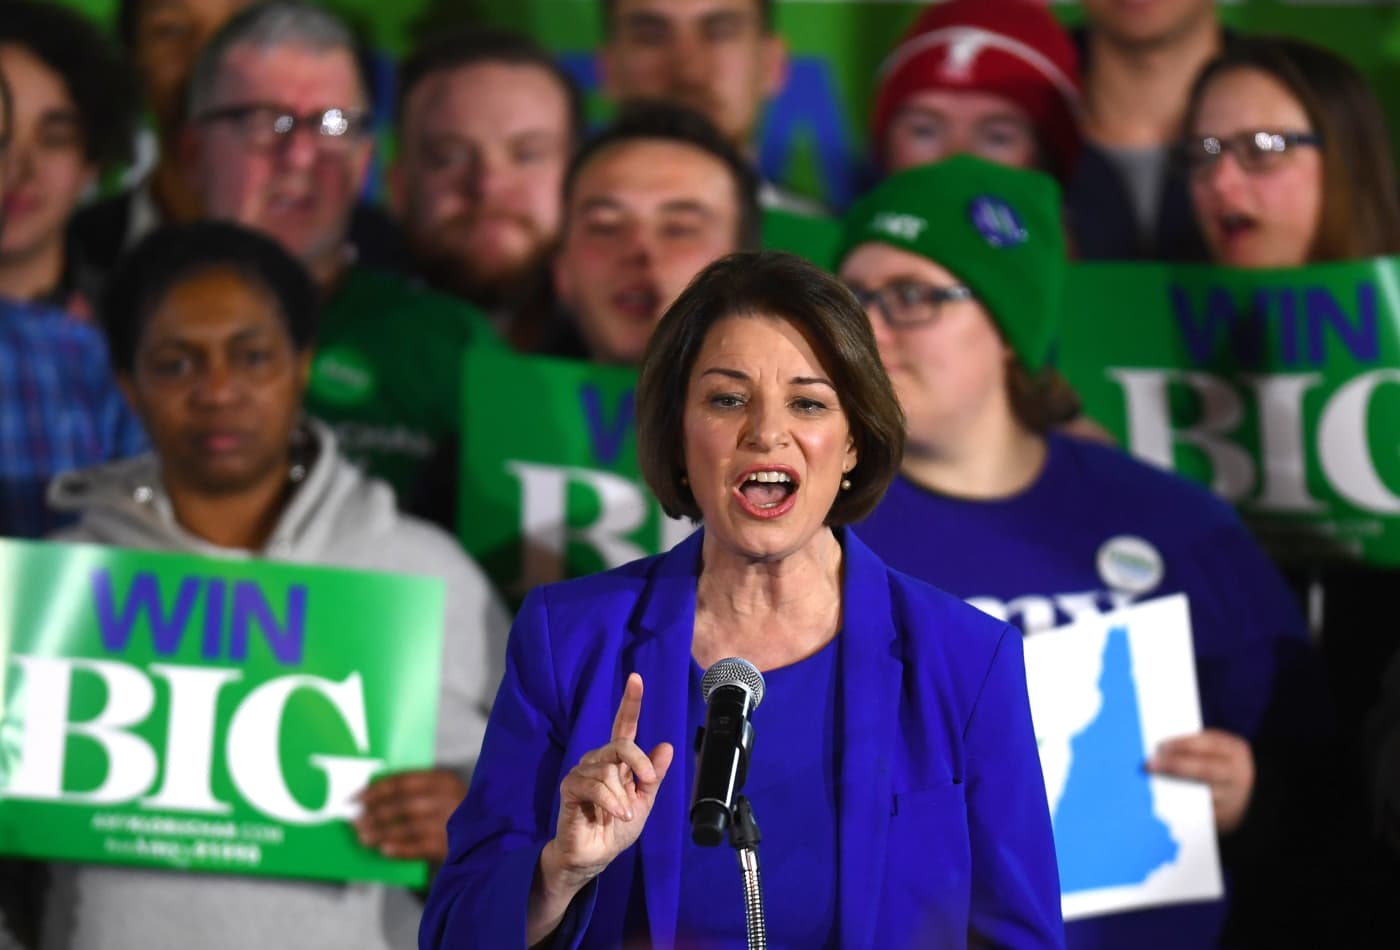 Amy Klobuchar says campaign has raised over $12 million online since New Hampshire debate